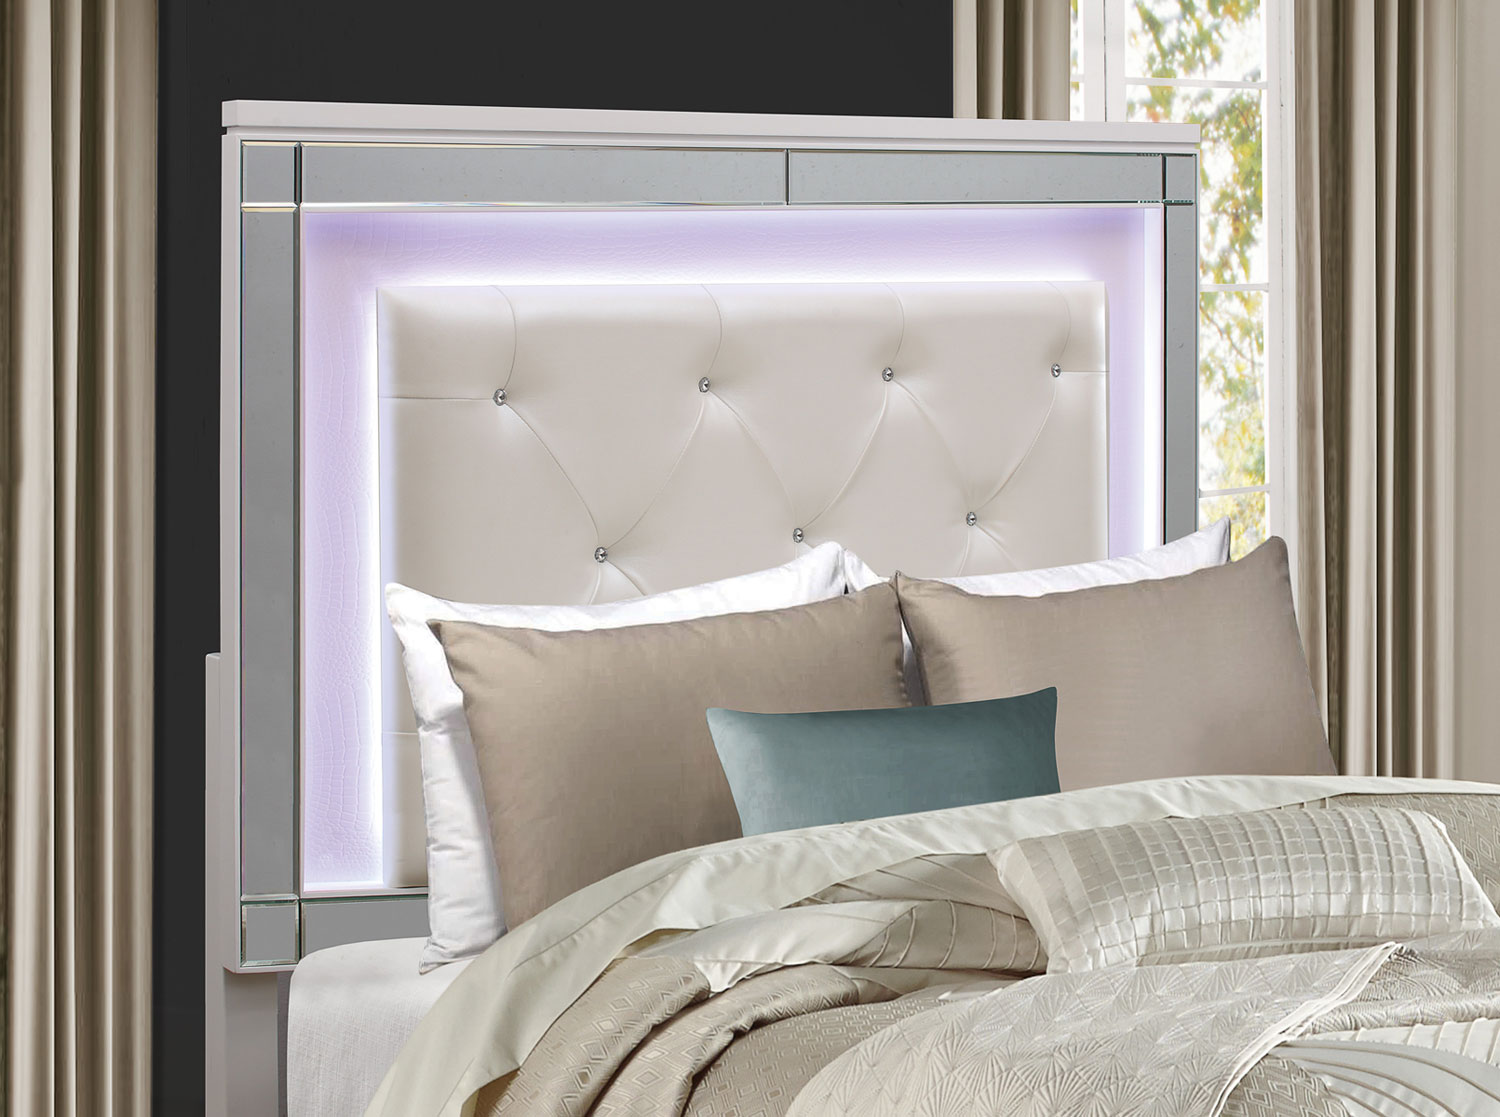 Homelegance Alonza Bed with LED Lighting - Brilliant White